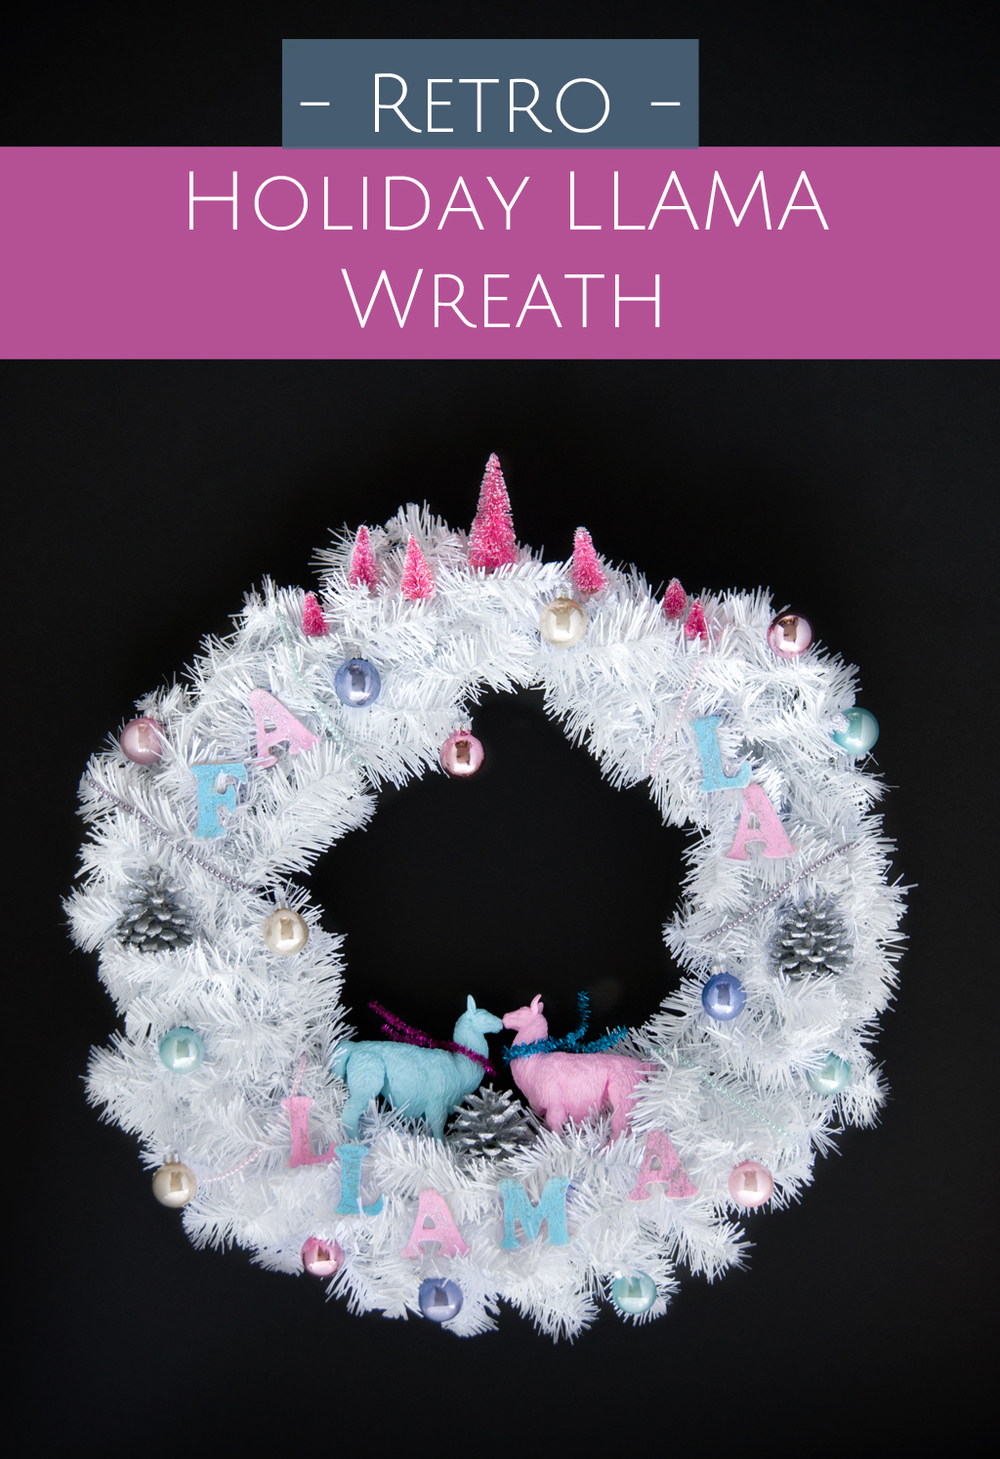 Deck the Halls with cheerful llamas! DIY Retro Holiday Fa La Llama Wreath